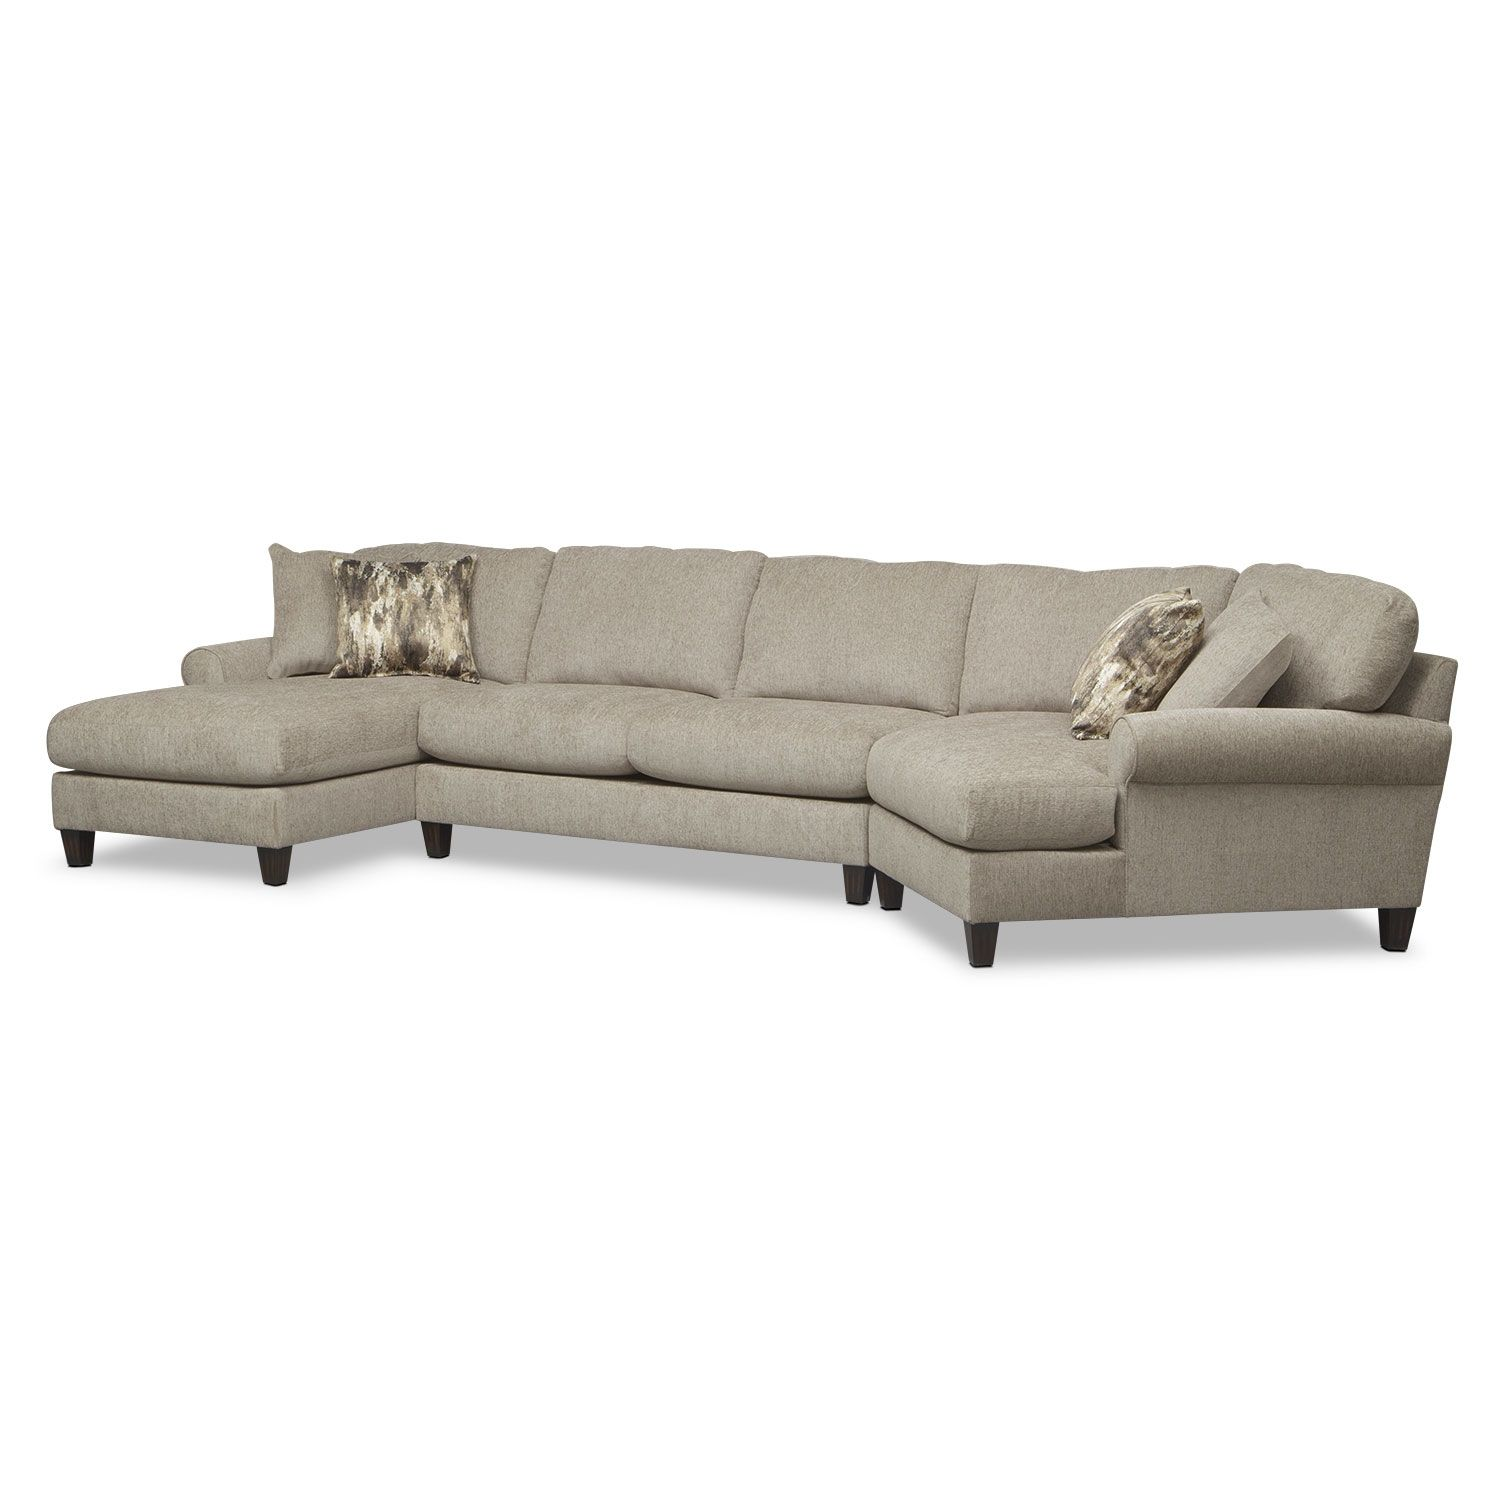 Karma Mink 3 Pc. Sectional With